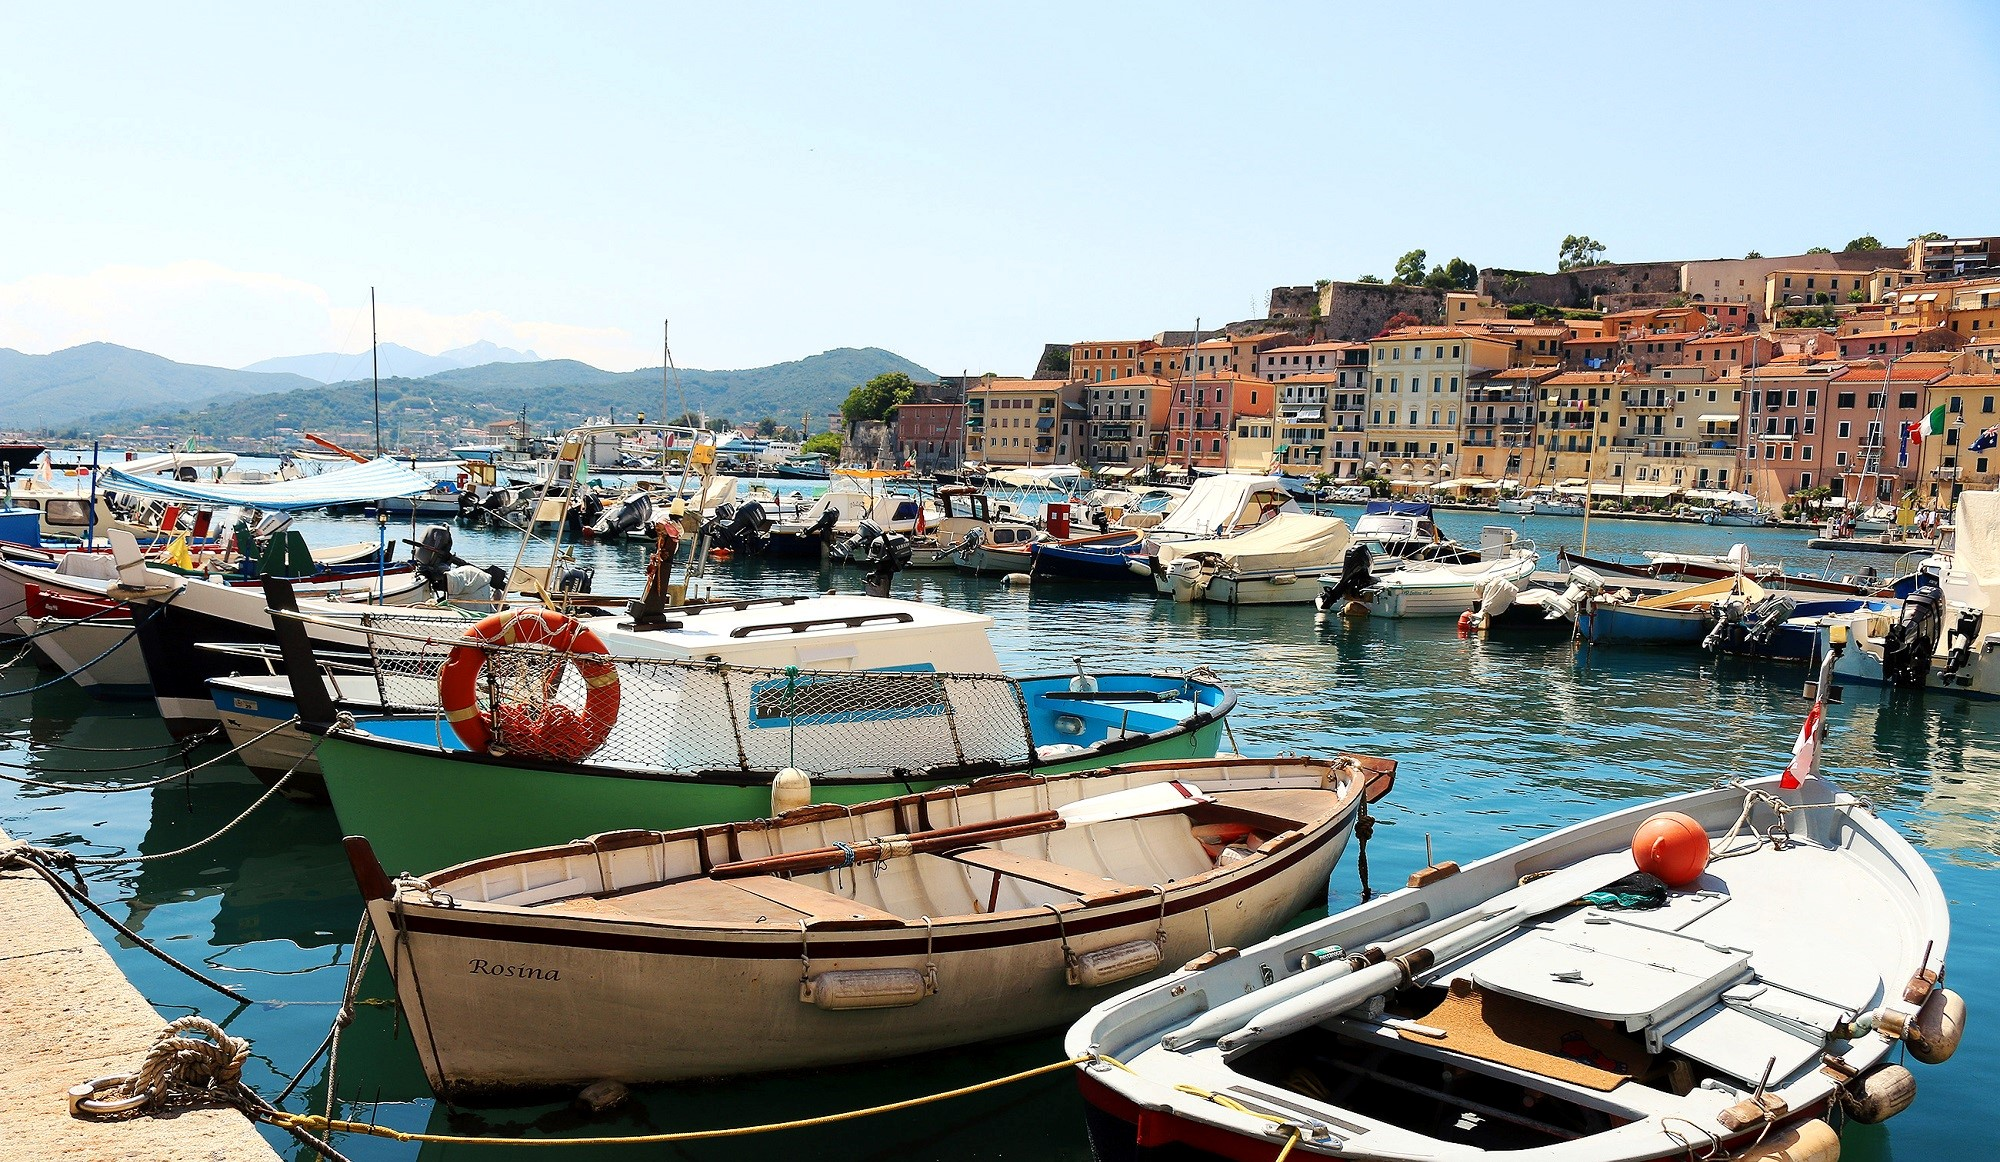 Top Tips for Visiting Italy